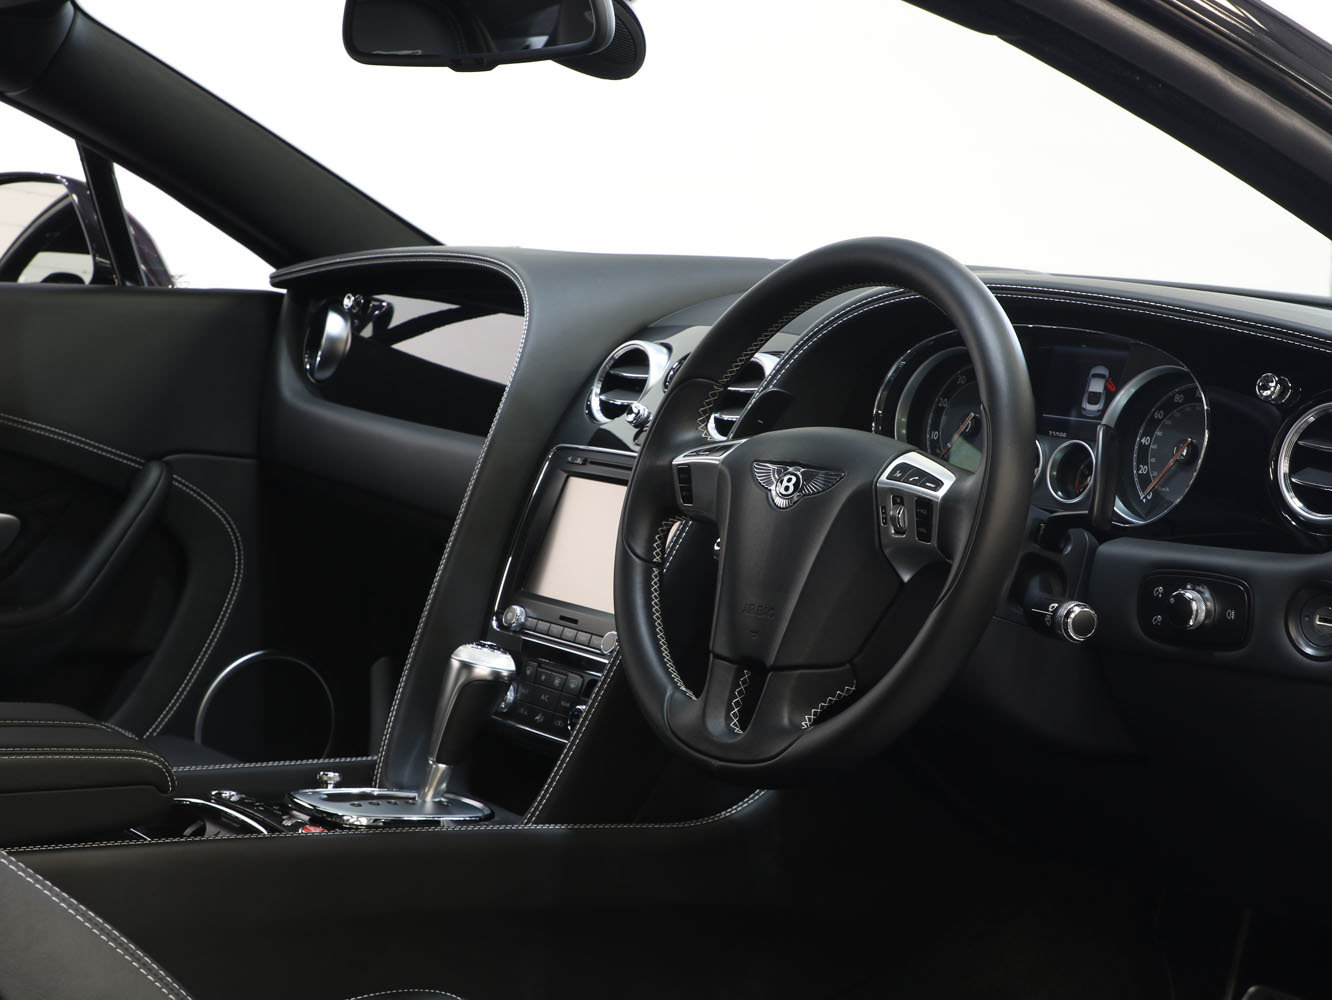 2013 13 13 BENTLEY CONTINENTAL 6.0 W12 GT SPEED AUTO For Sale (picture 5 of 6)